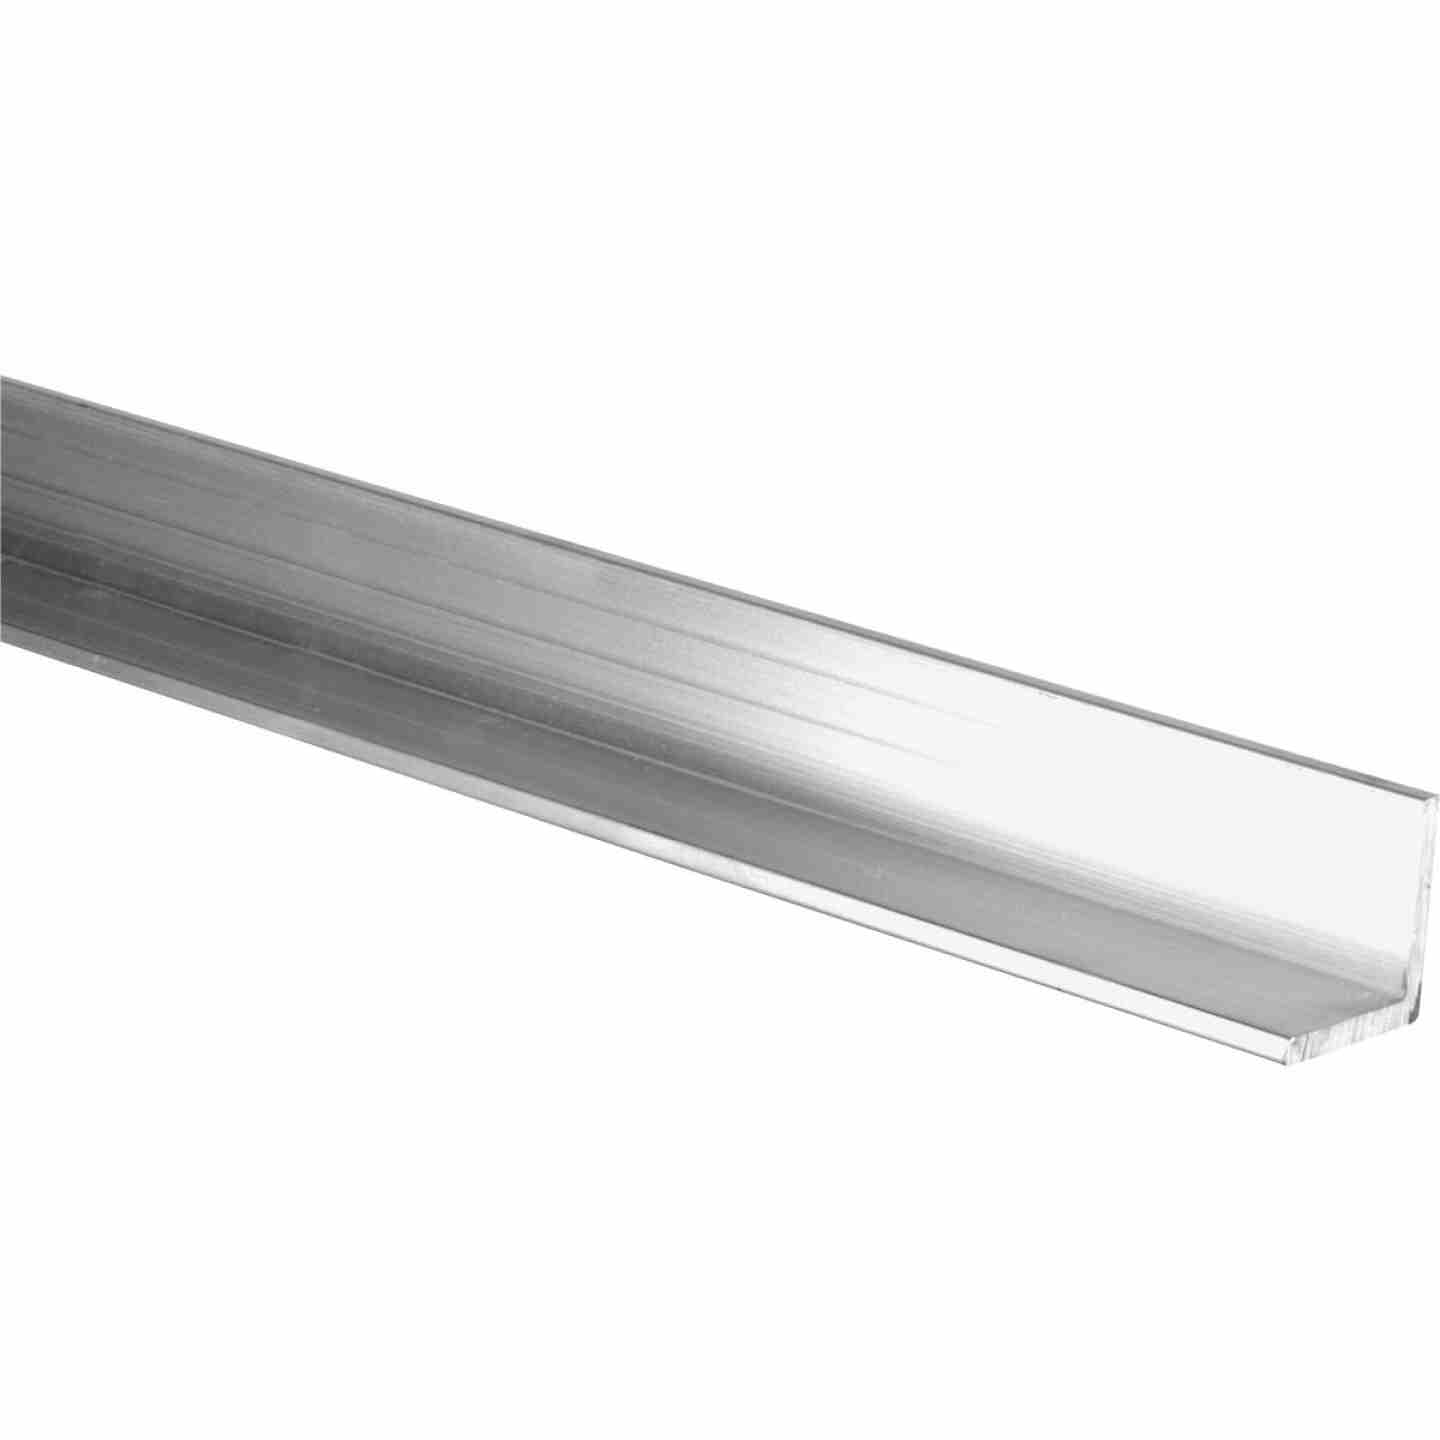 HILLMAN Steelworks Mill 3/4 In. x 8 Ft., 1/16 In. Aluminum Solid Angle Image 1